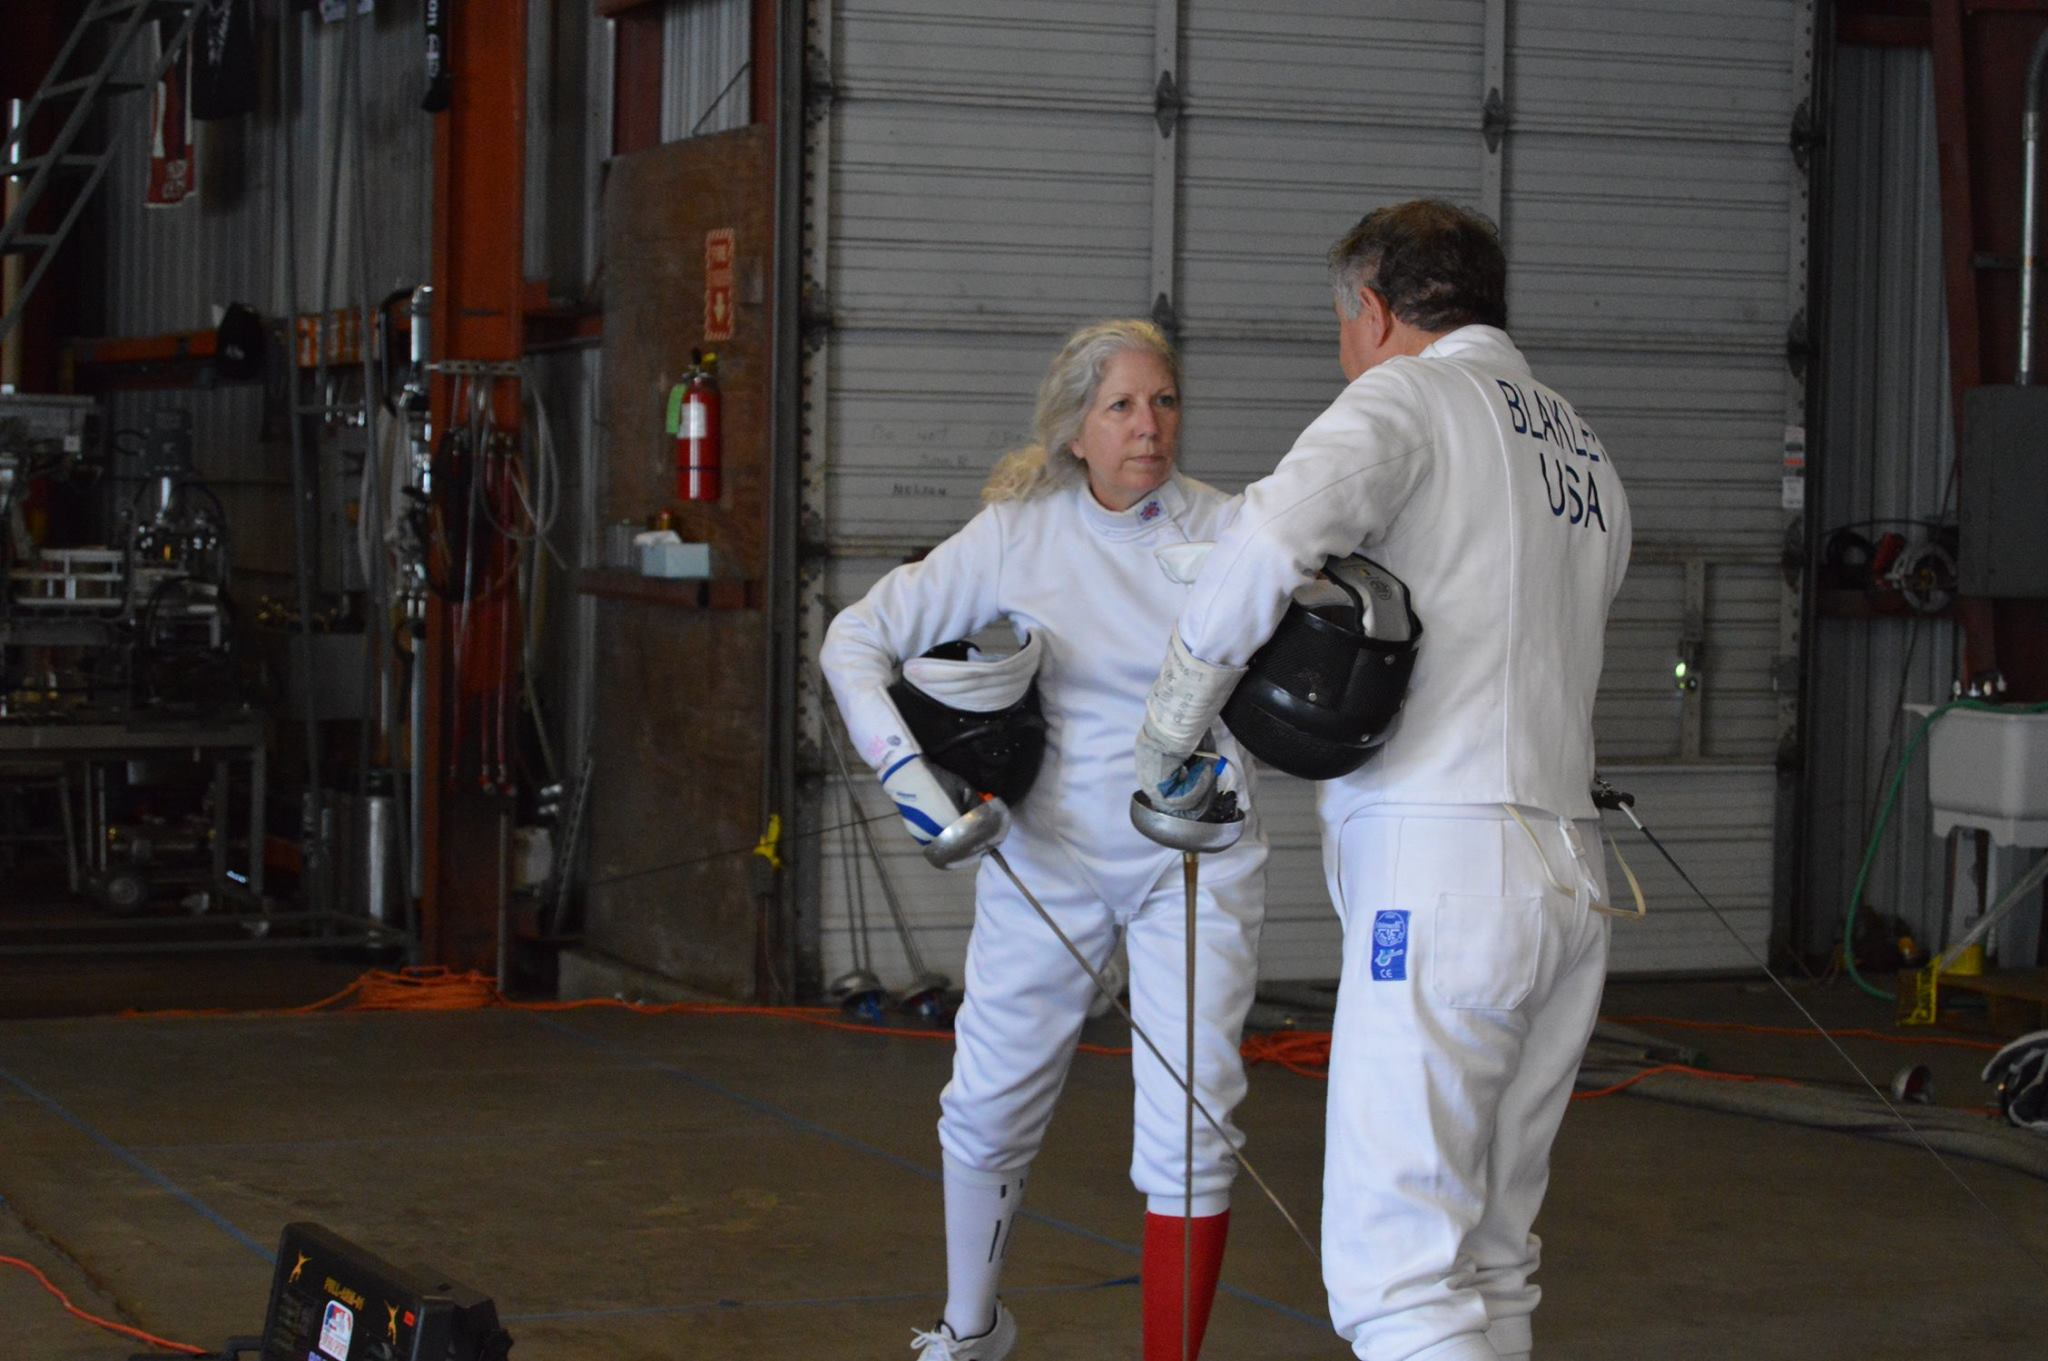 Kathy Howell Machol preparing to fencing